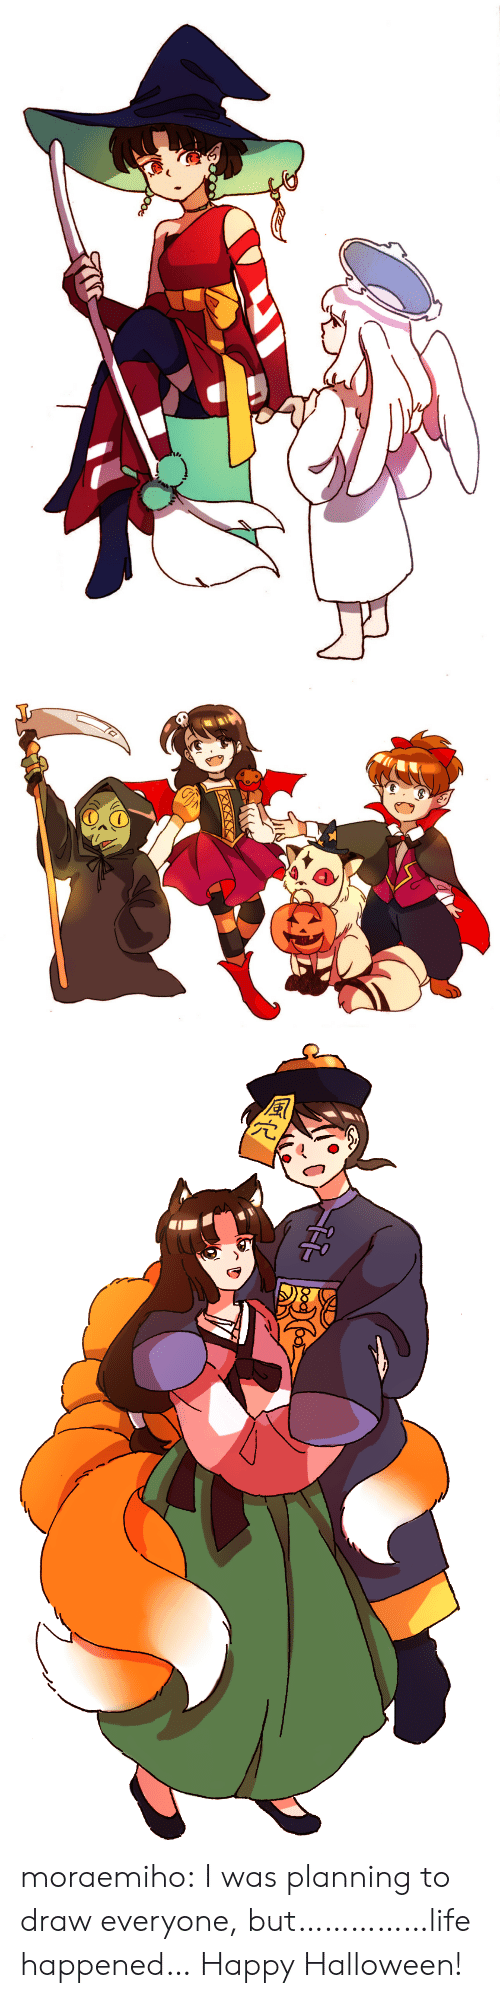 Halloween, Life, and Target: moraemiho: I was planning to draw everyone, but……………life happened… Happy Halloween!